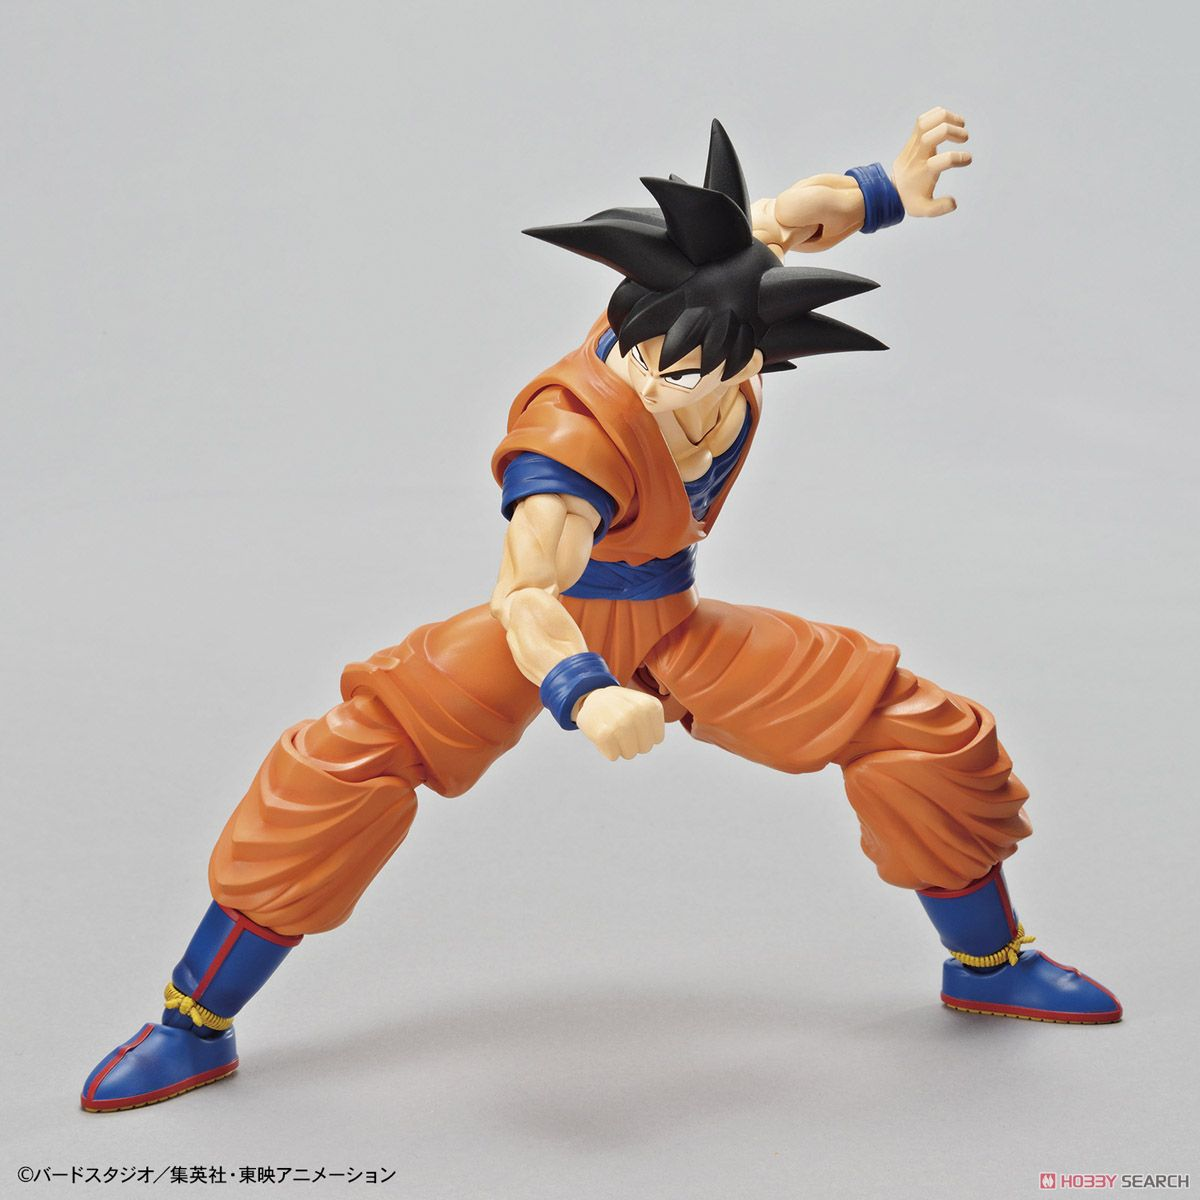 [DRAGON BALL] FIGURE-RISE STANDARD SON GOKU – ready for sale